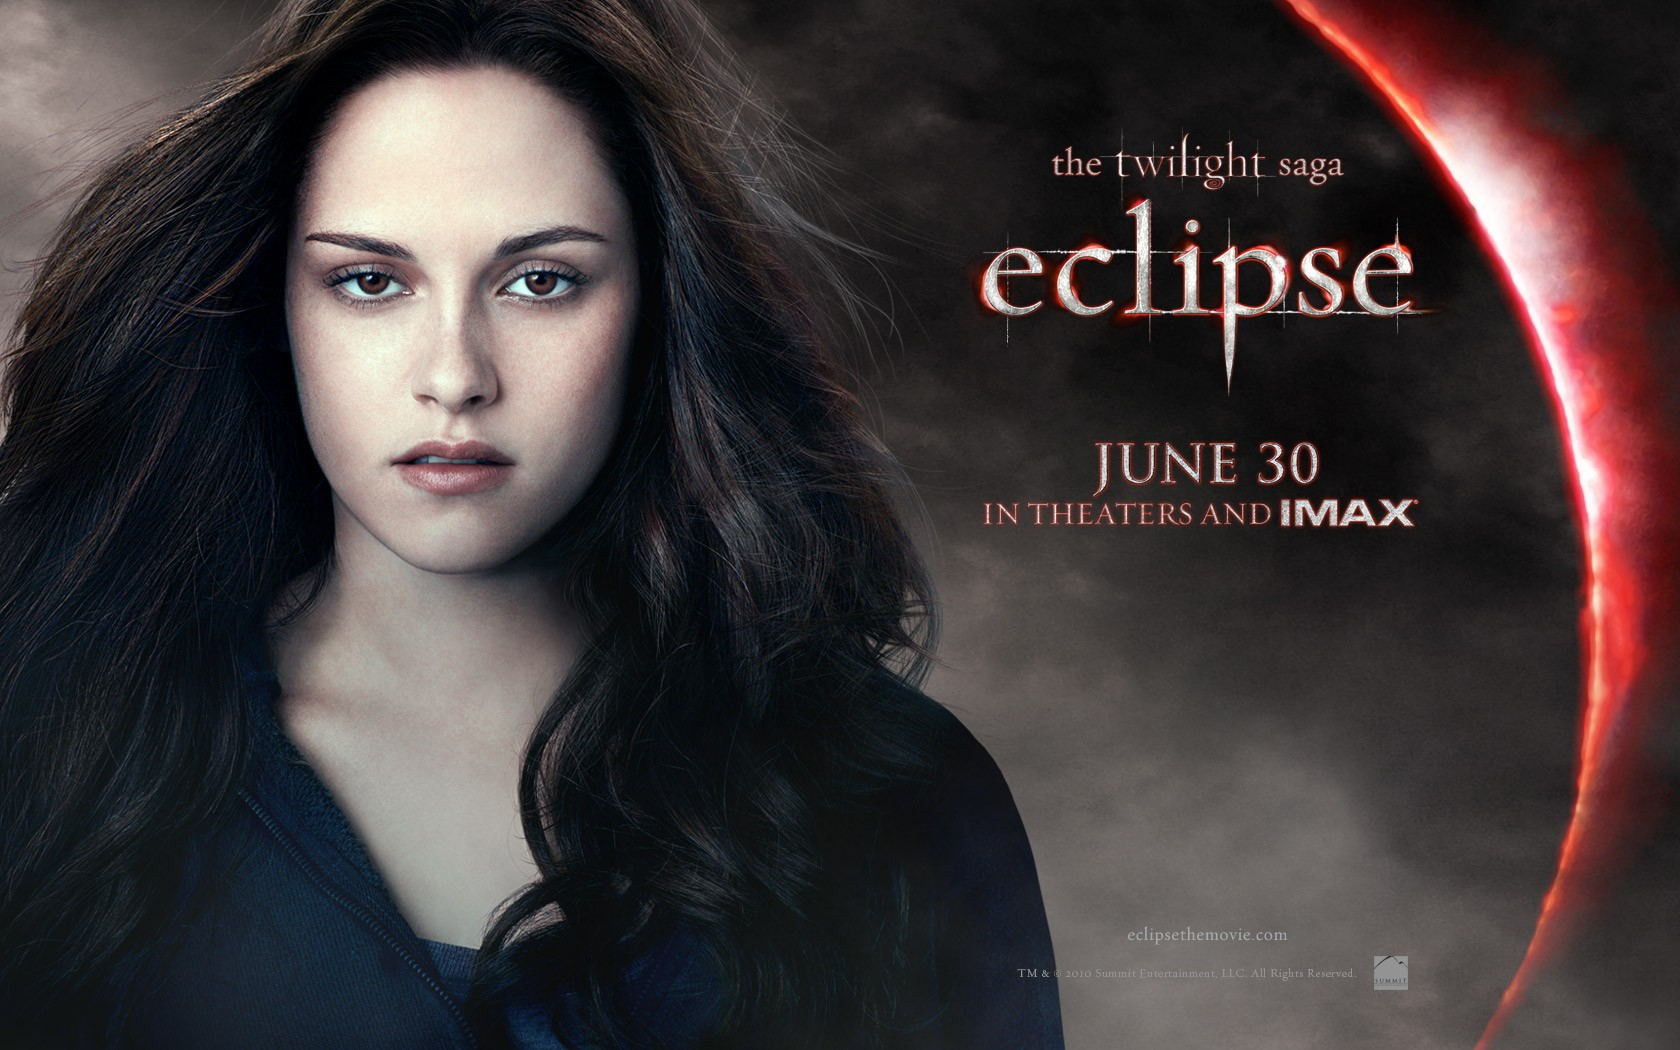 Il wallpaper ufficiale di Bella (Kristen Stewart) del film The Twilight Saga: Eclipse